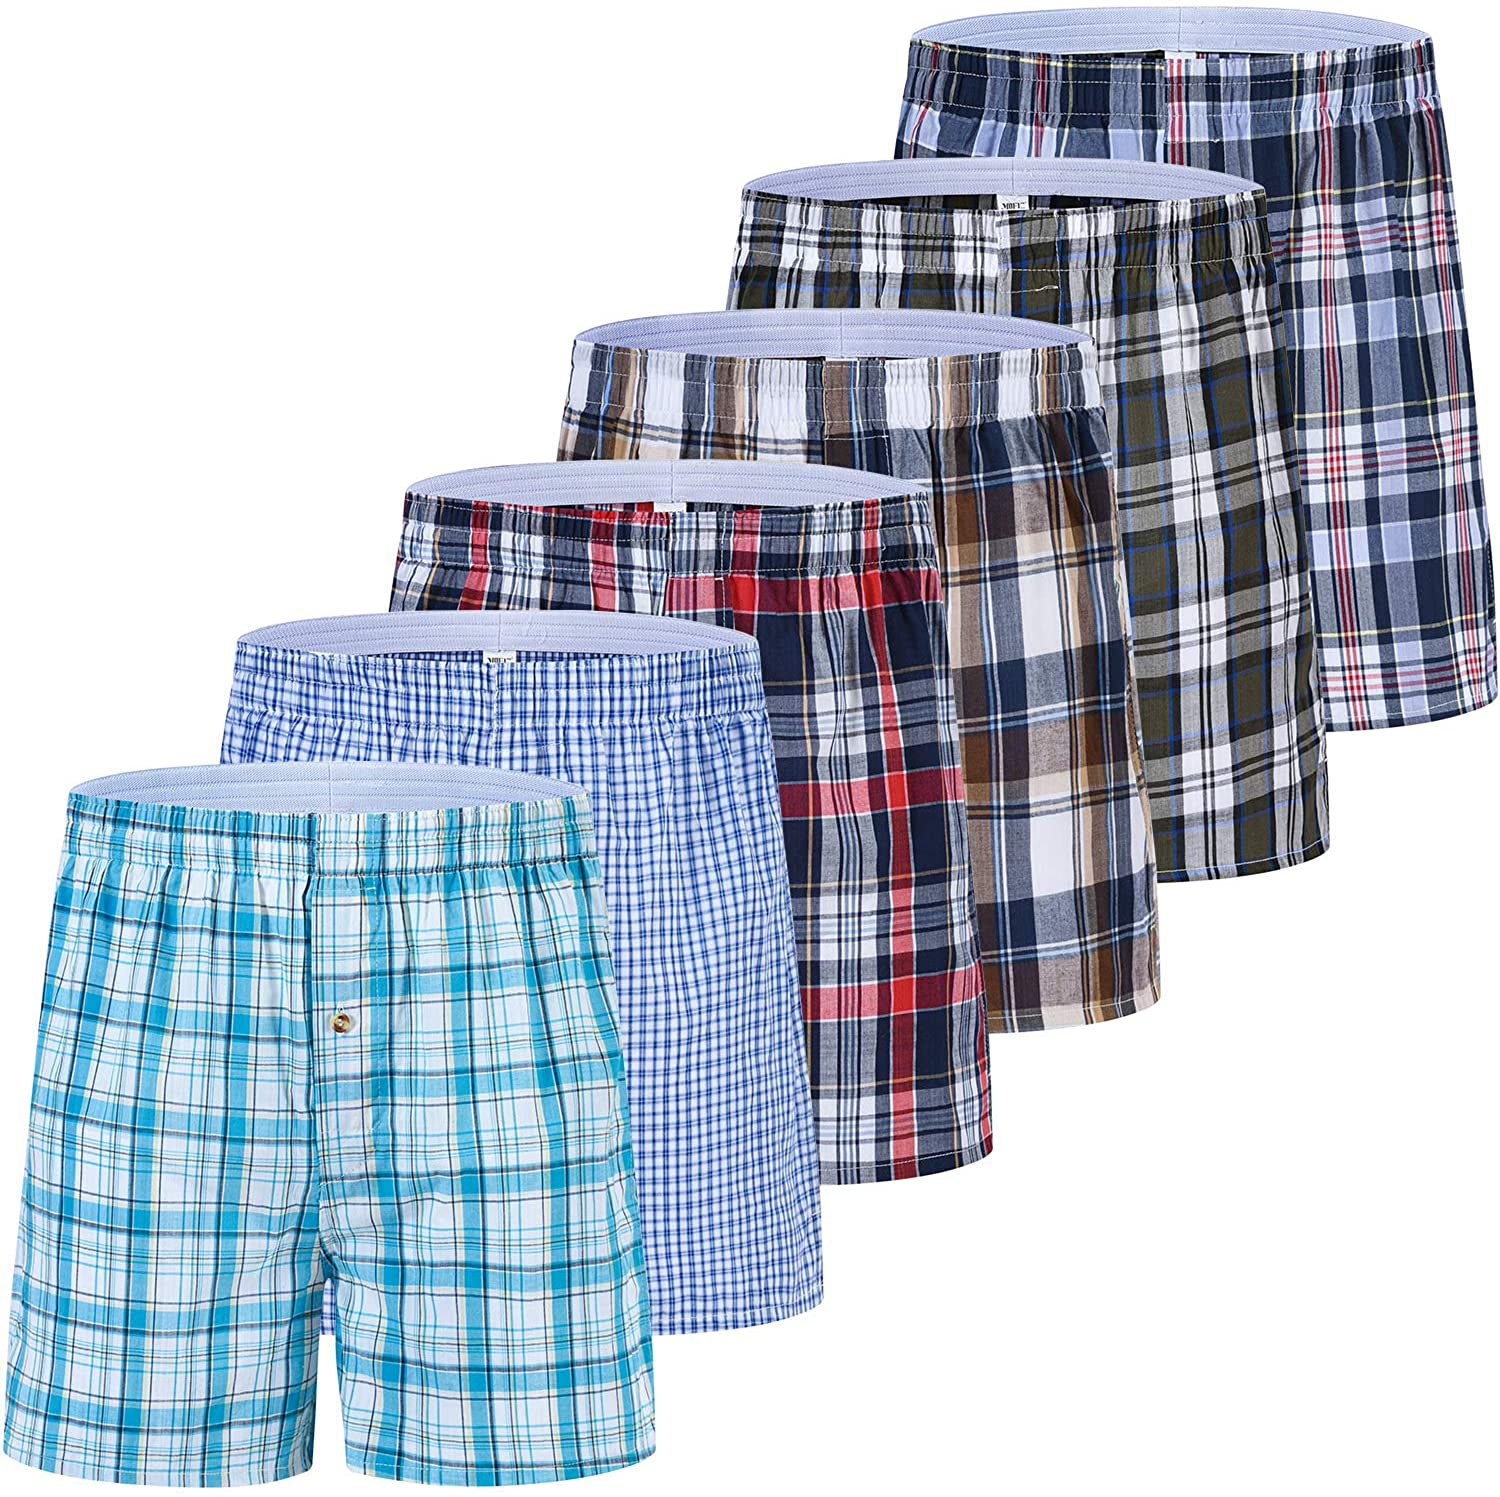 JINSHI Men's Underwear Boxer Shorts Comfortable&Breathable Lounge Shorts Classic Plaid Fit Button Fly Loose 6-Pack